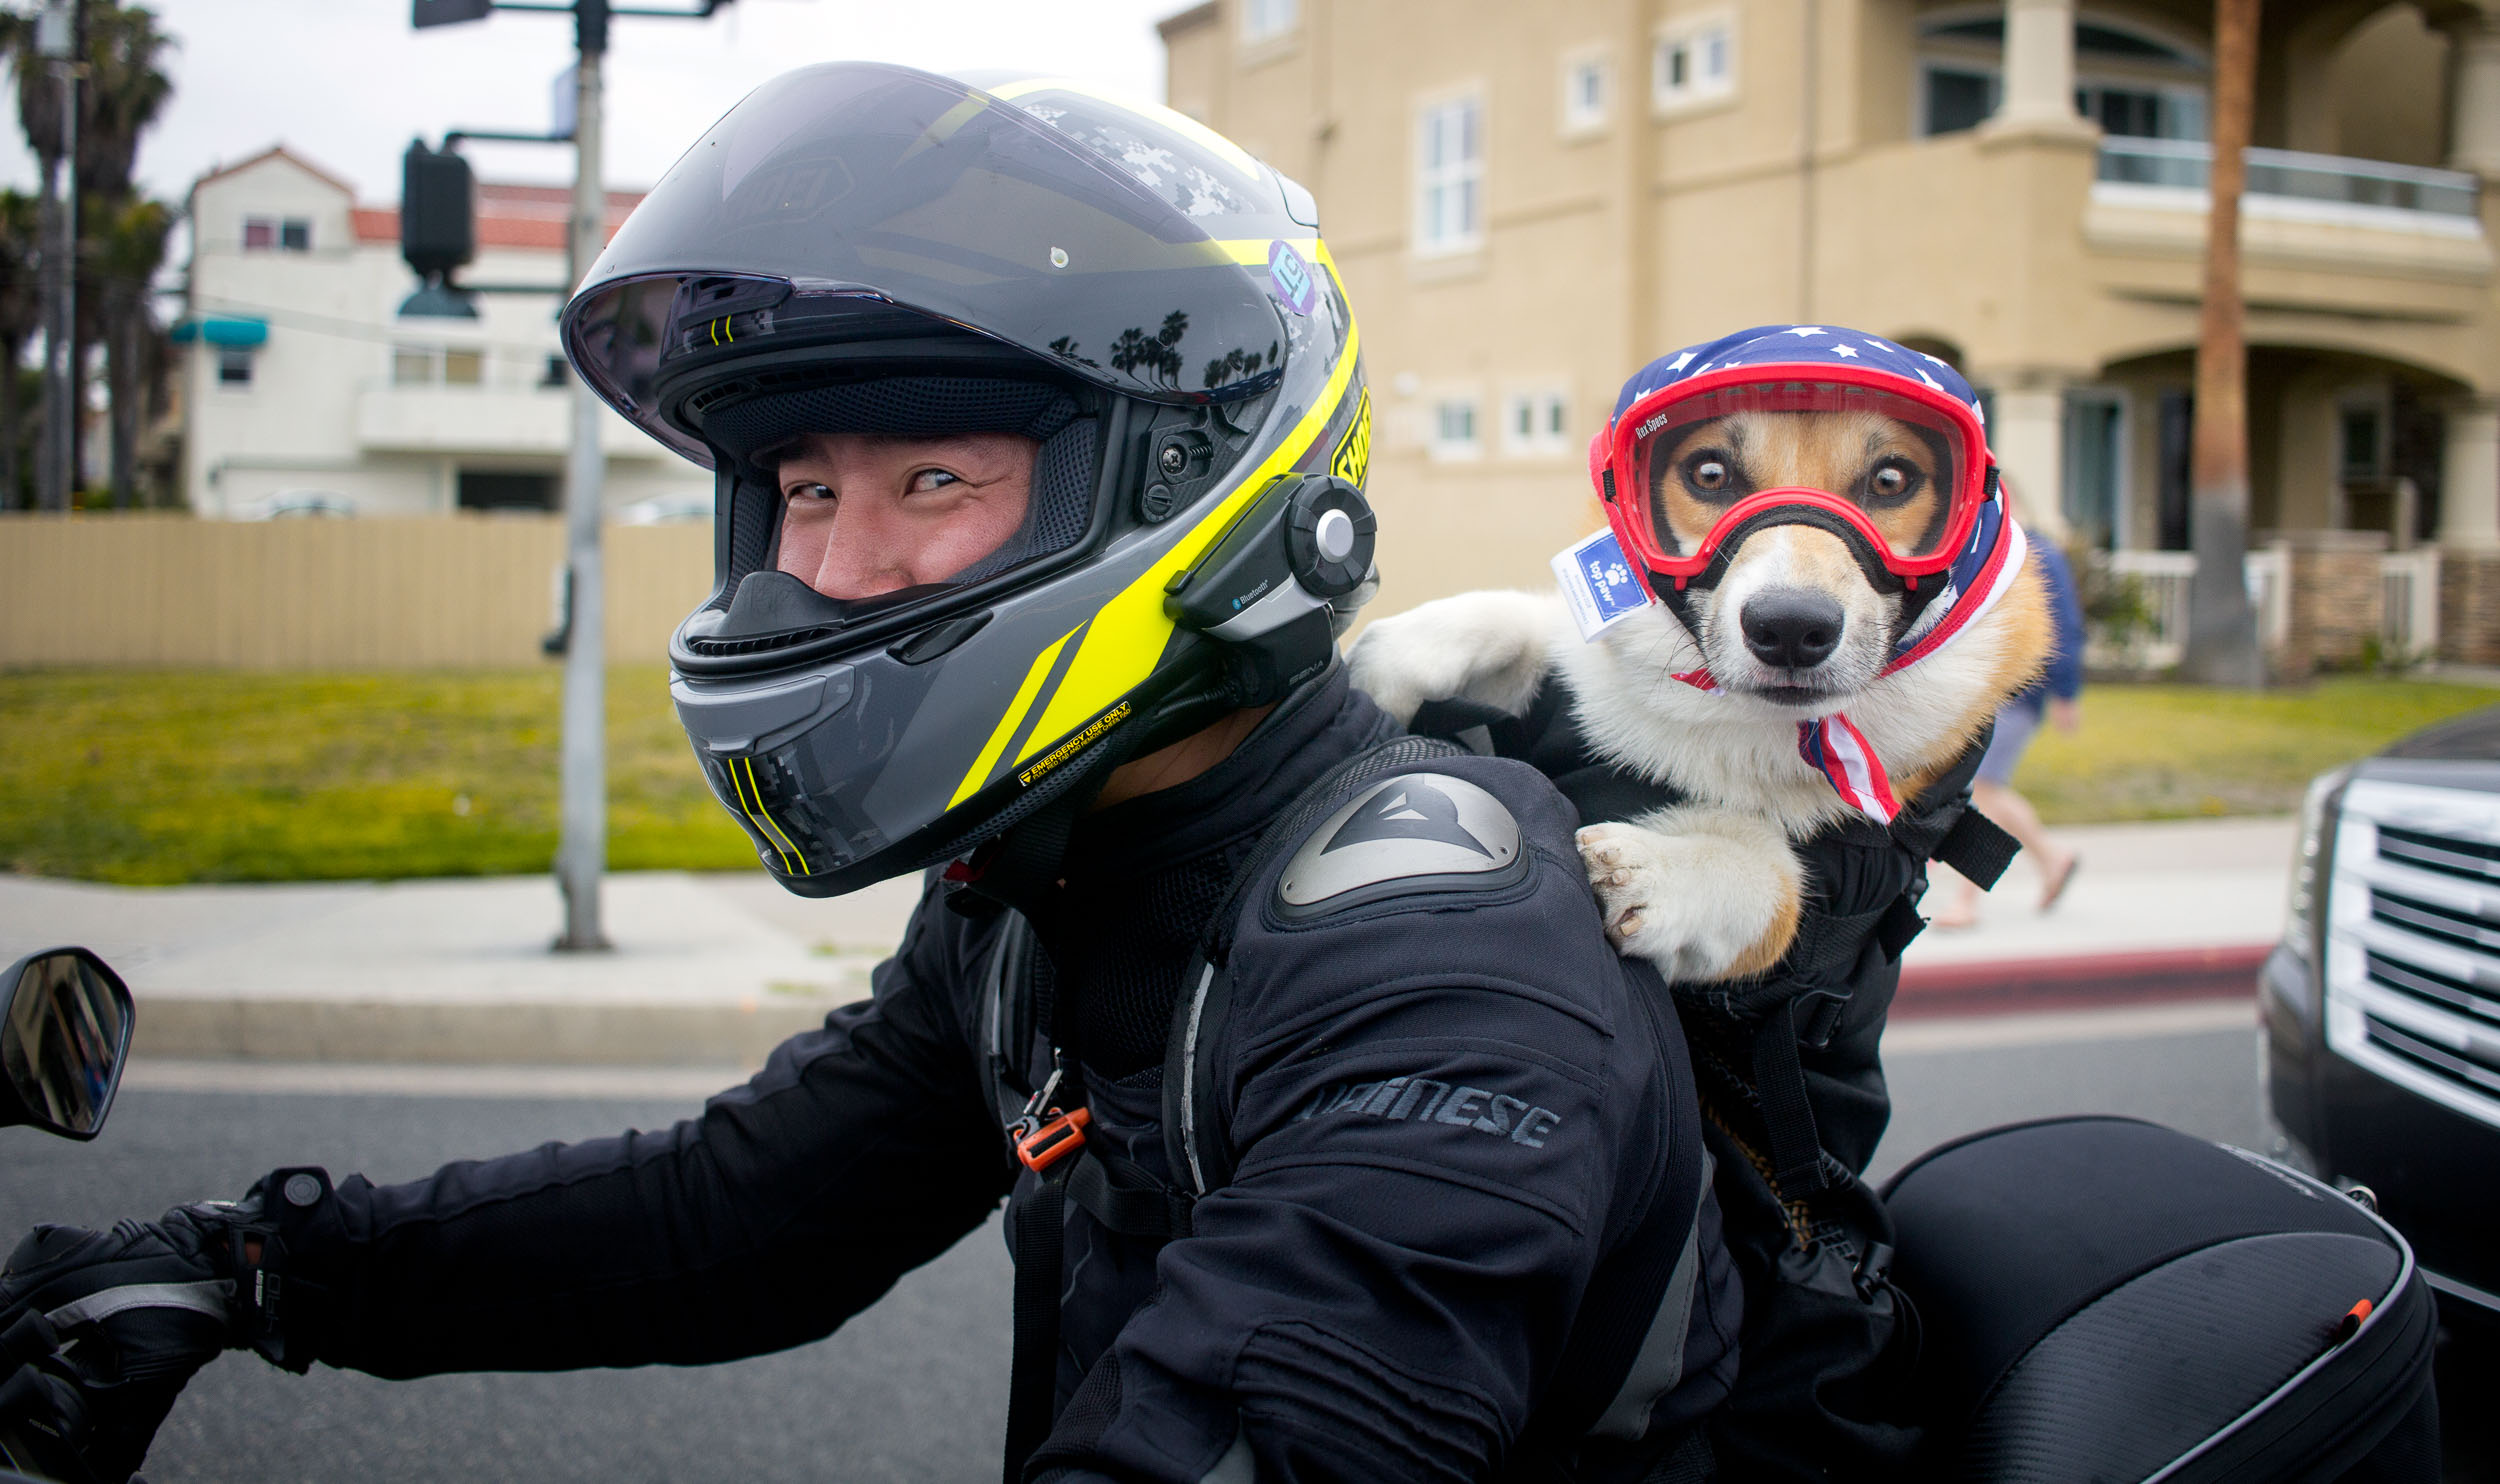 This Corgi is Atticus, and he likes to arrive to the party in style. I was crossing the cross-walk, and this little guy and his human pulled up. Of course, I stopped (safely) in the middle of the street to document this moment. You can follow Atticus' motorbike journey on Instagram  here . He's so cool!